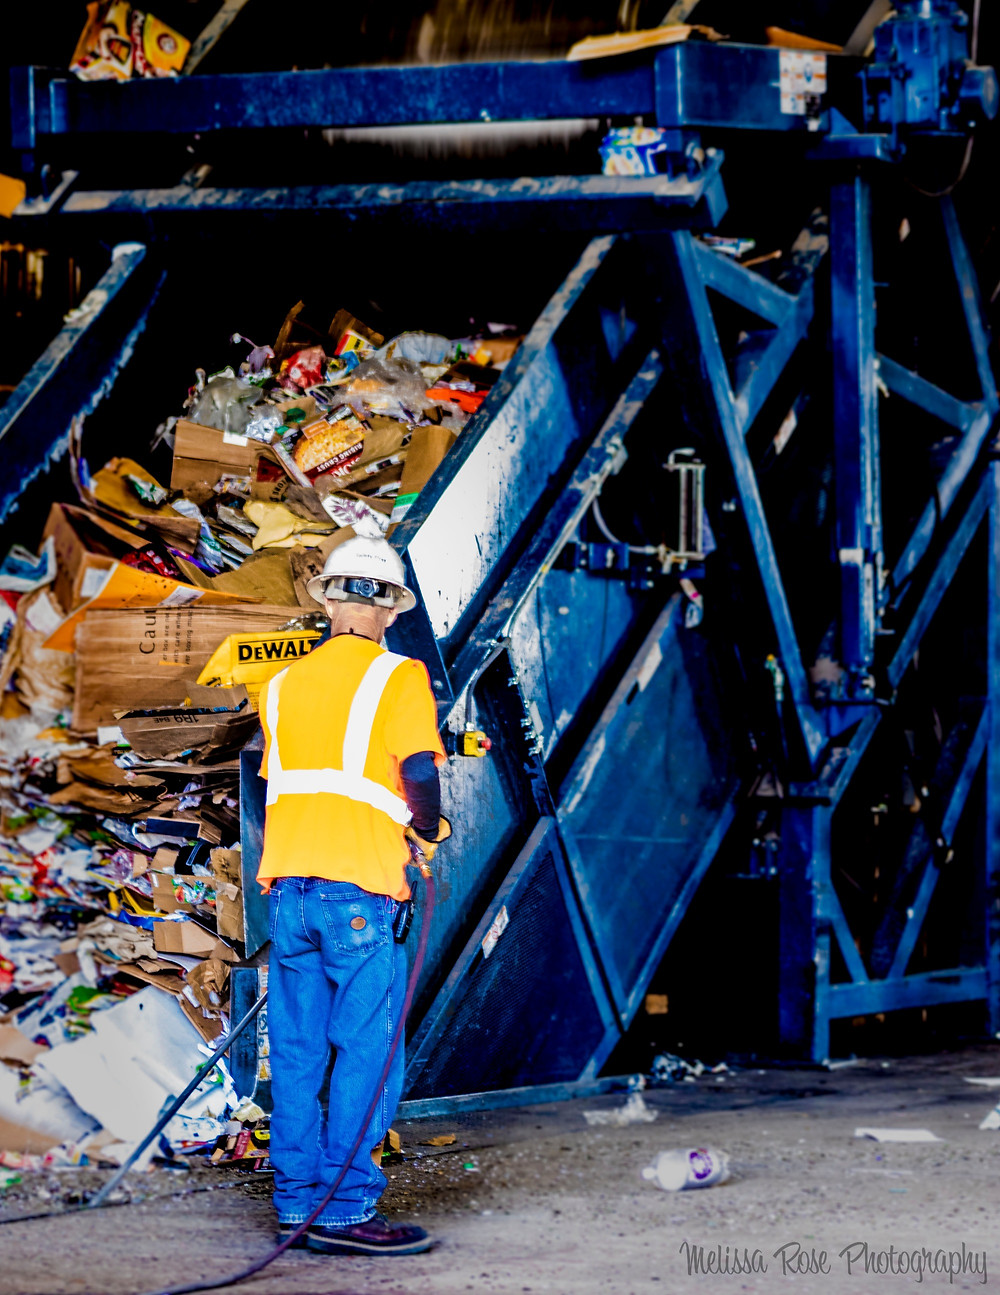 Recycle sorting equipment Colorado Springs Material Recovery Facility